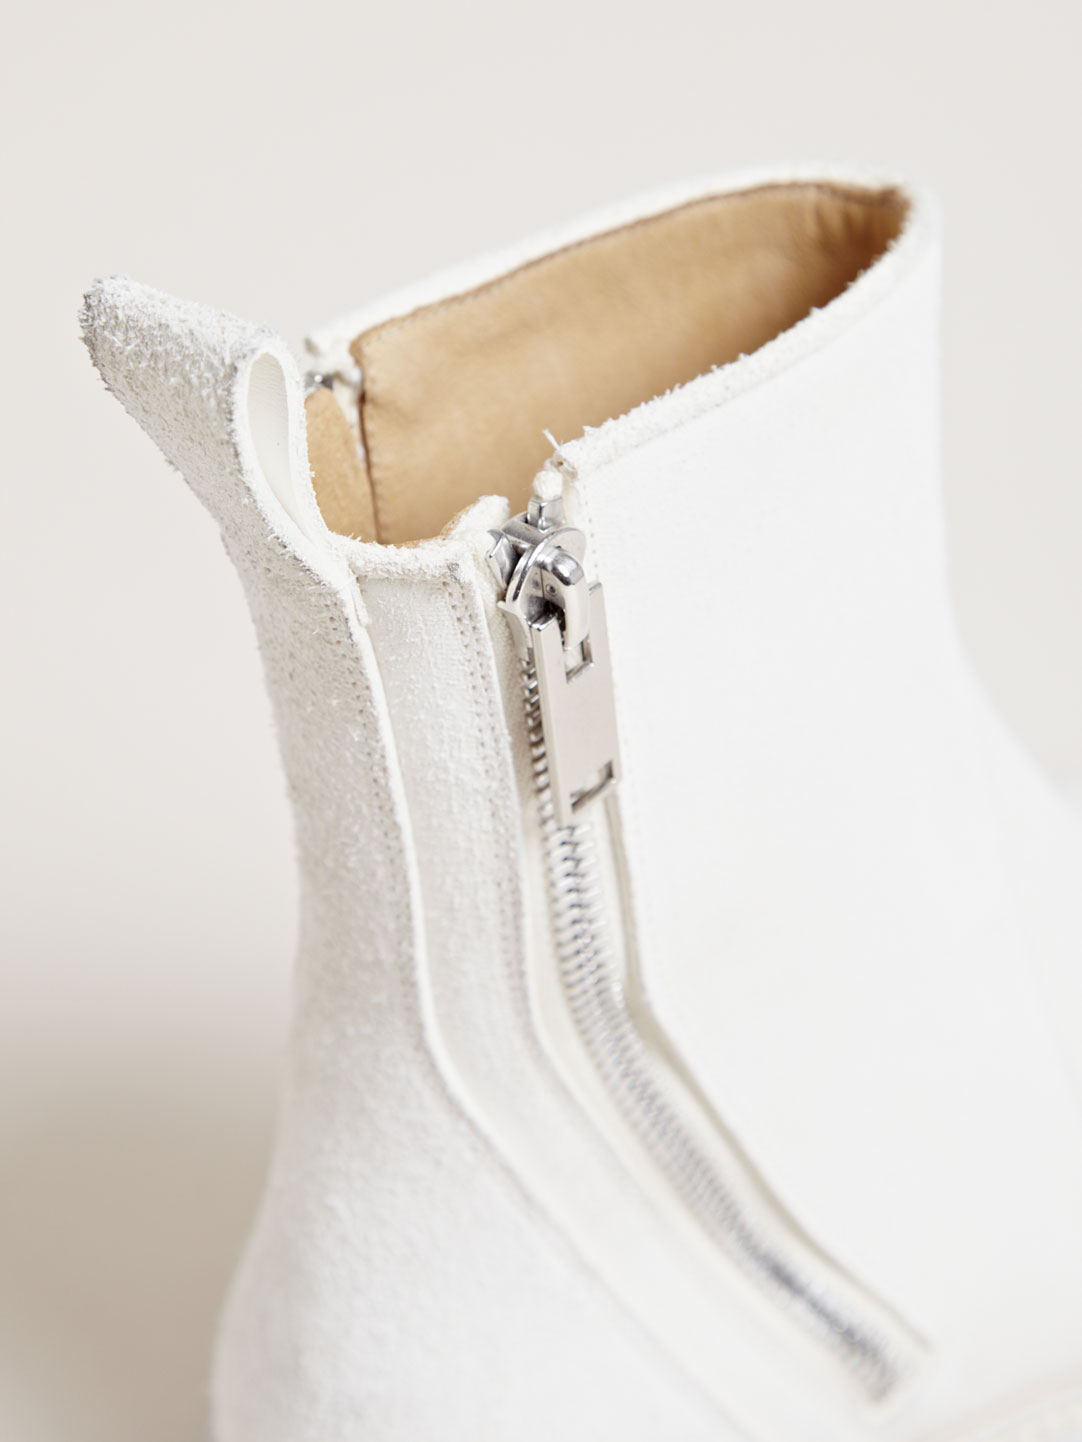 Milk White Zip Boots Rick Owens brushed leather 4